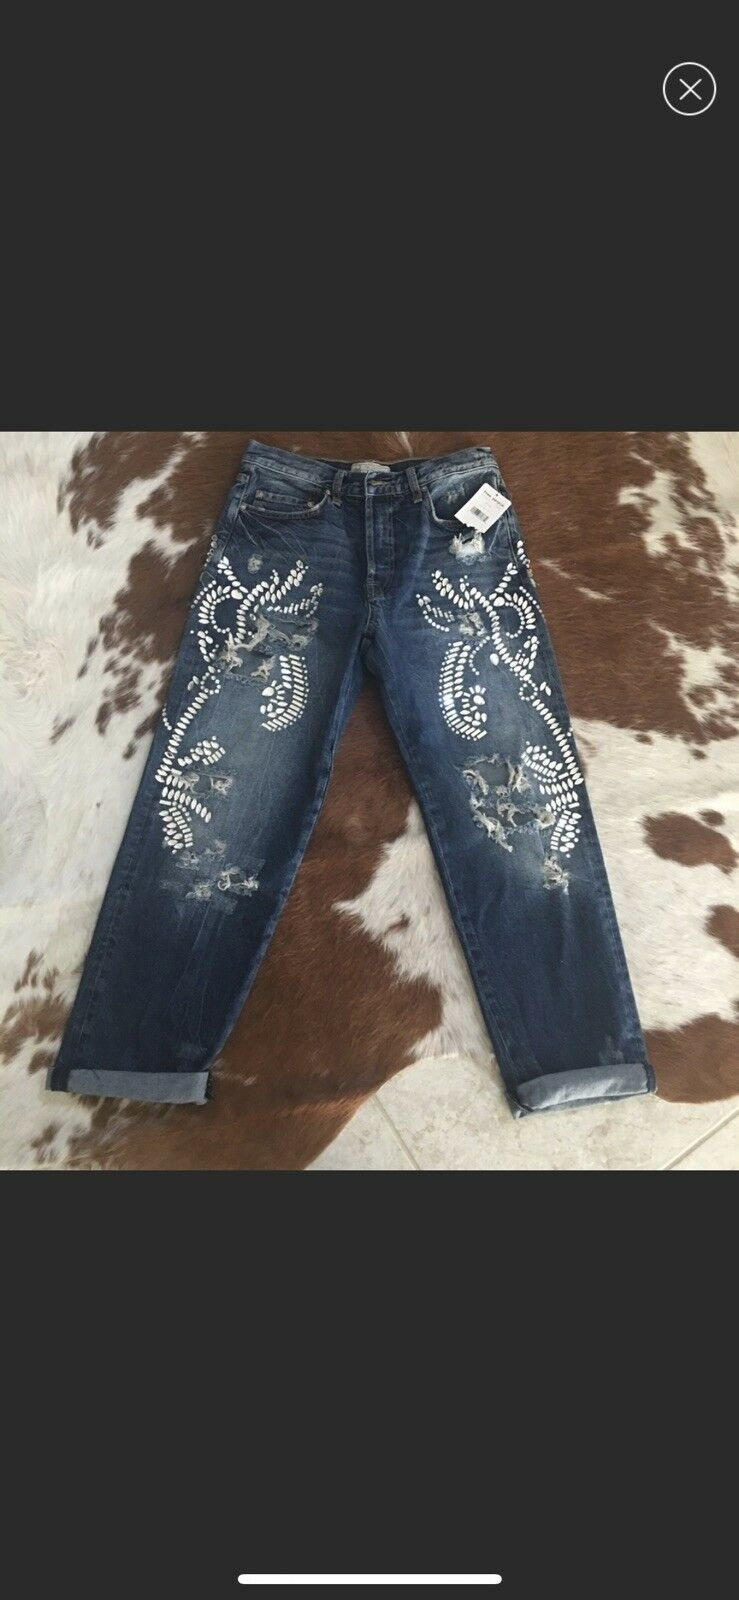 Free People Embellished Ripped Jeans Item  OB715524  5413. Barcode  90383 61787